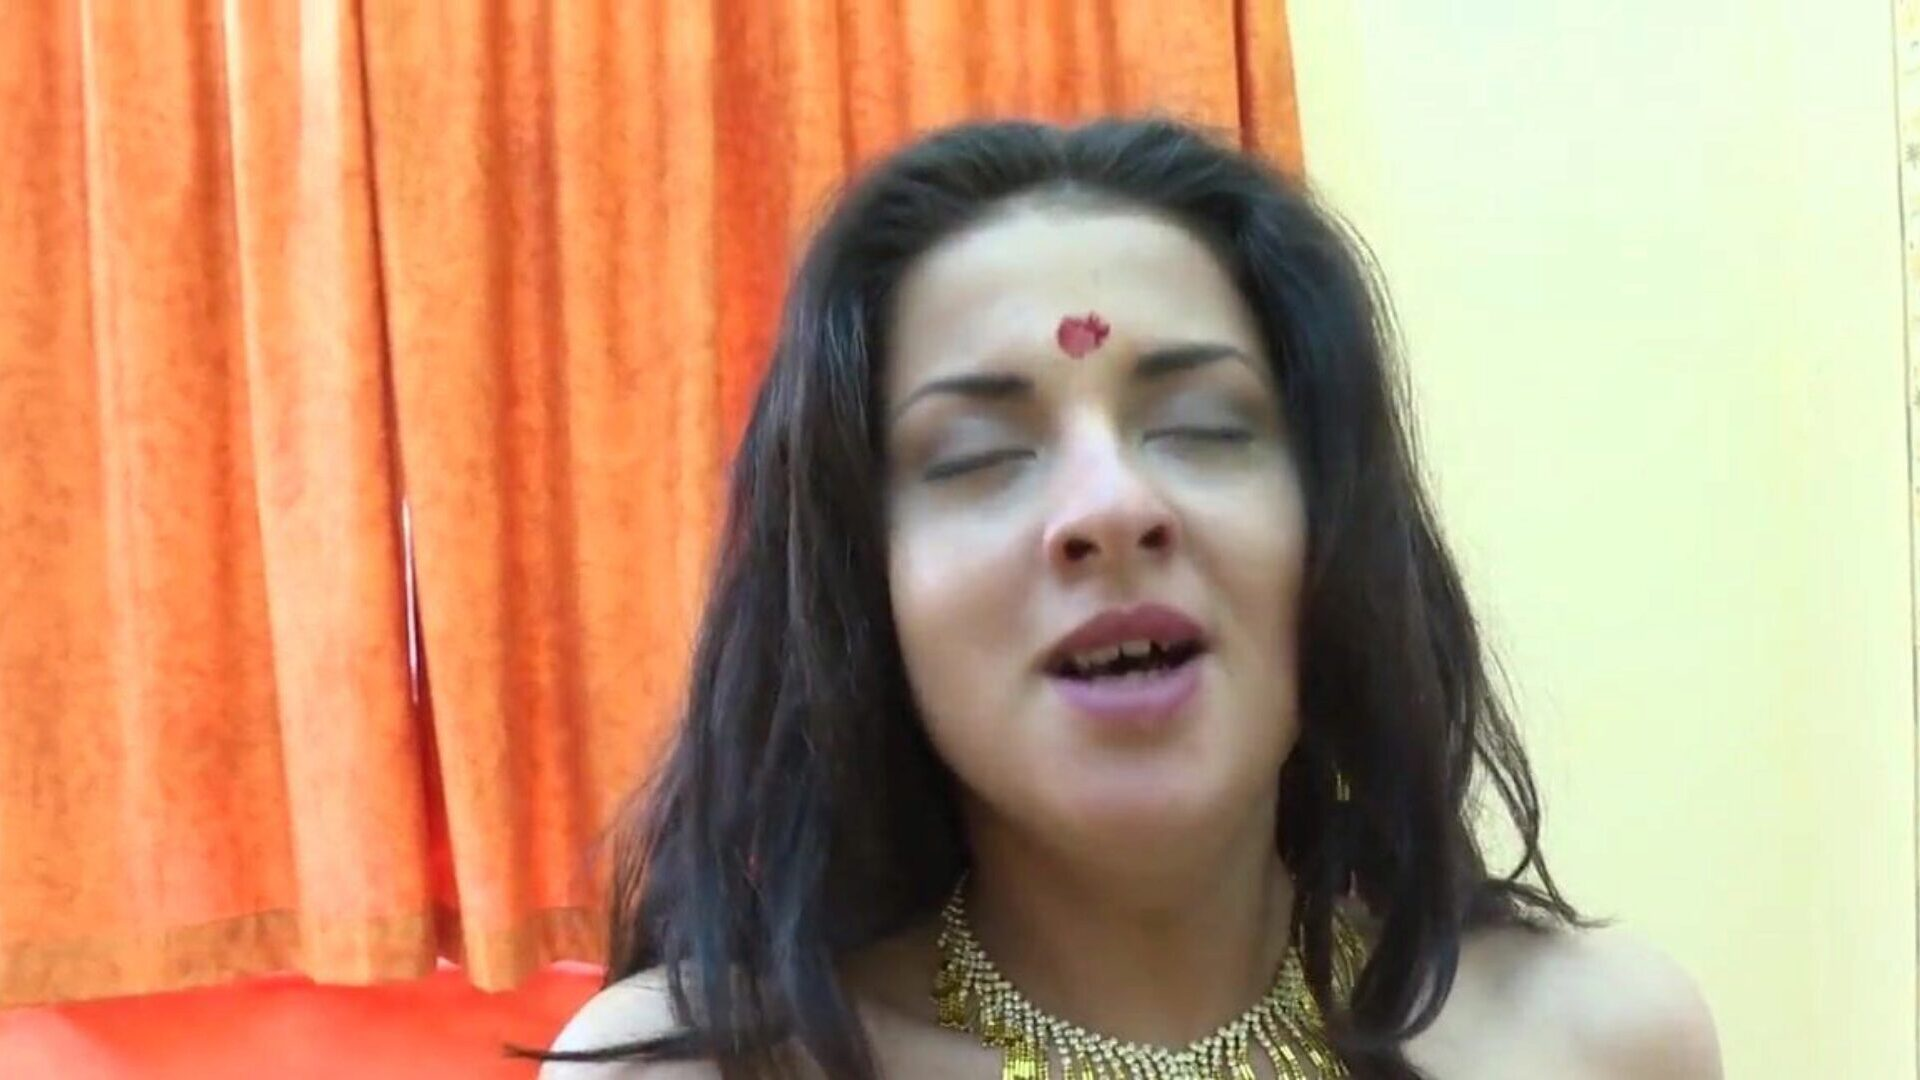 Indian wife banged in Ashram by faux gurus and swallows jizm Erotic reality of Indian Ashram where chicks go to adore their Gurus but the gurus idiot them into having intercourse and make them gulp jizm They turn those babes into real bitches !!